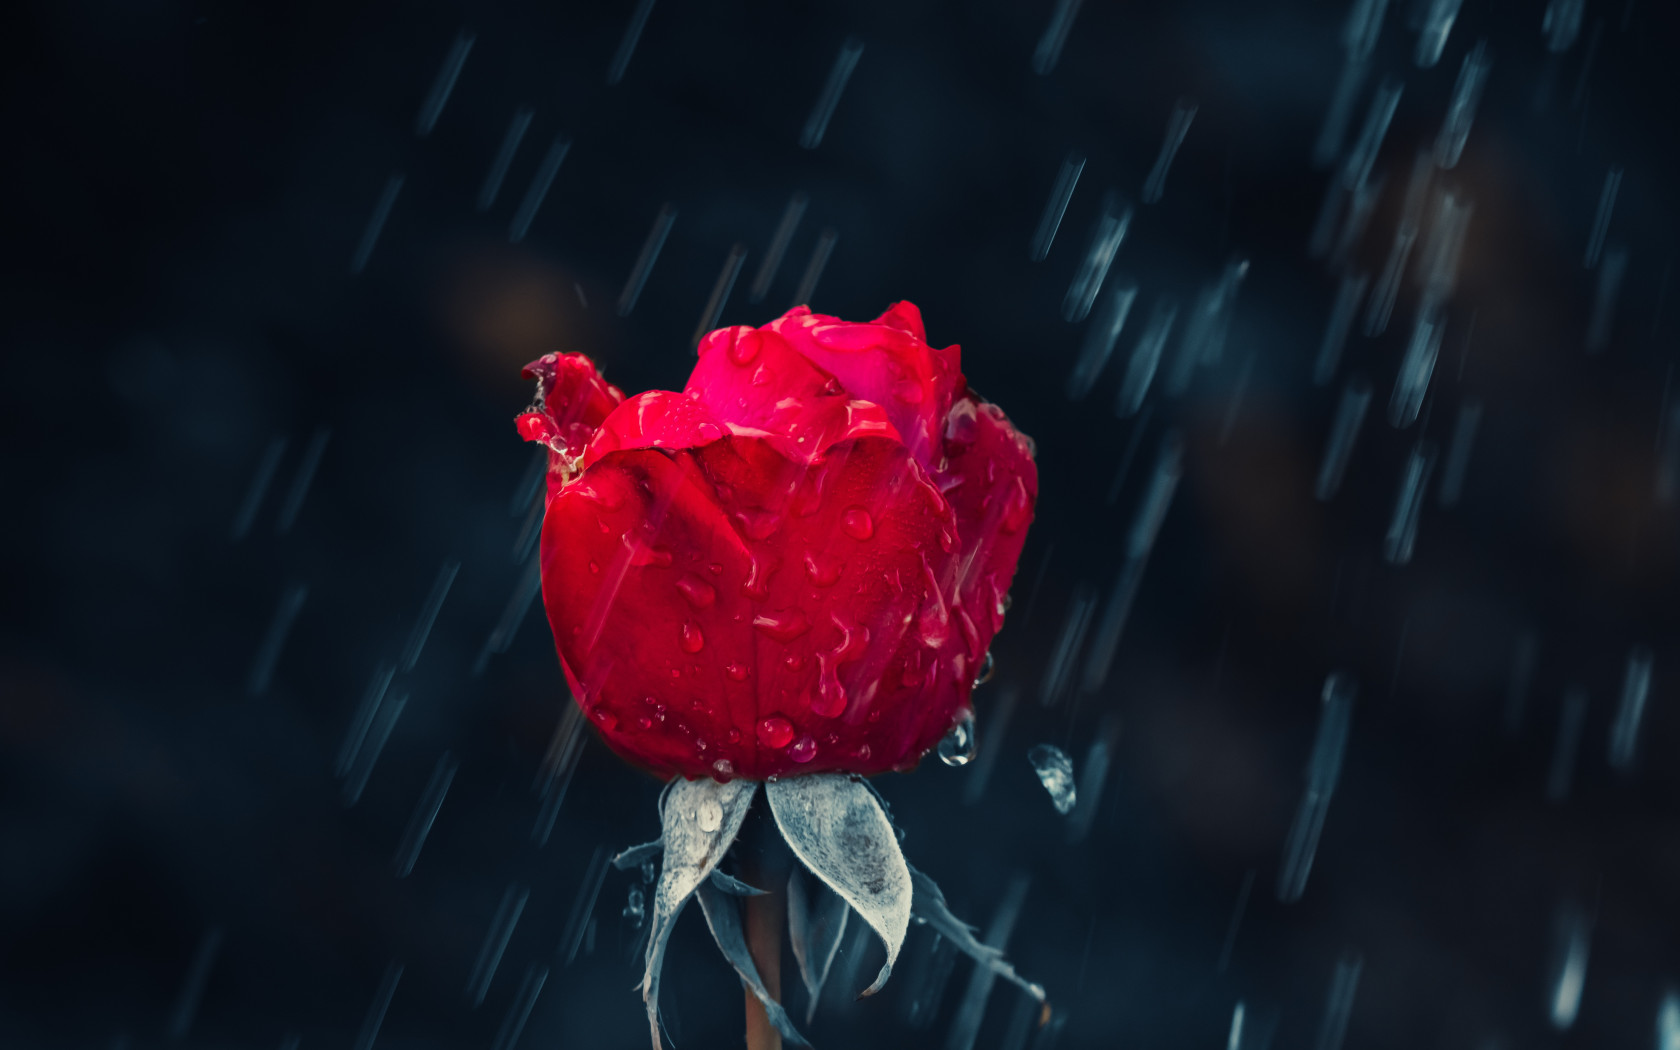 Red rose and raindrops wallpaper 1680x1050